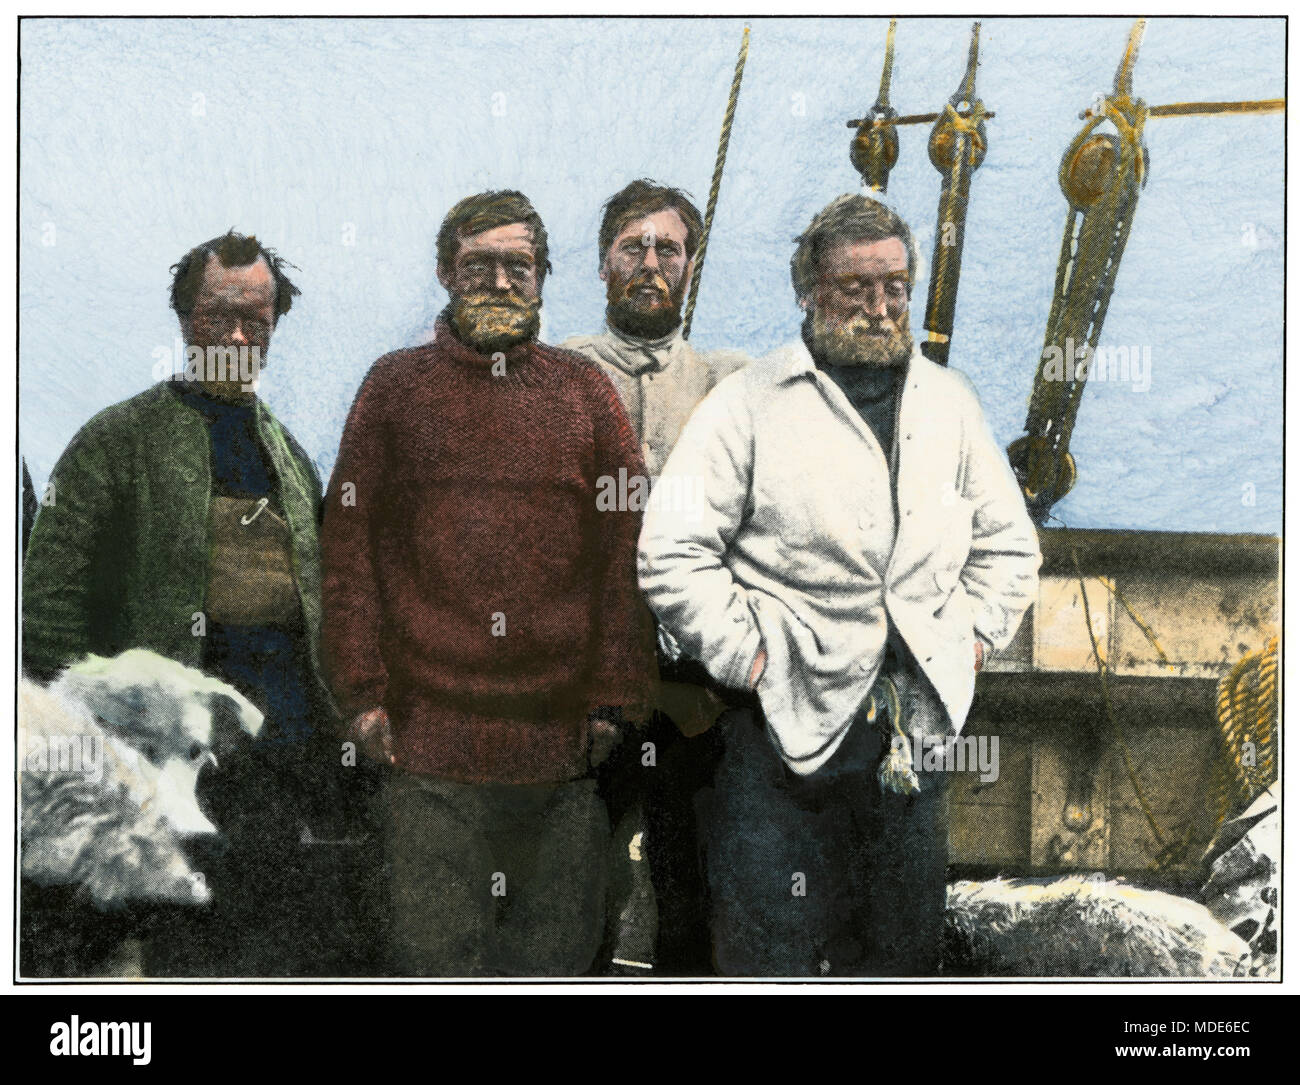 Shackleton and men upon return to the Nimrod after their Antarctic attempt, 1907-08. Hand-colored halftone of a photograph - Stock Image